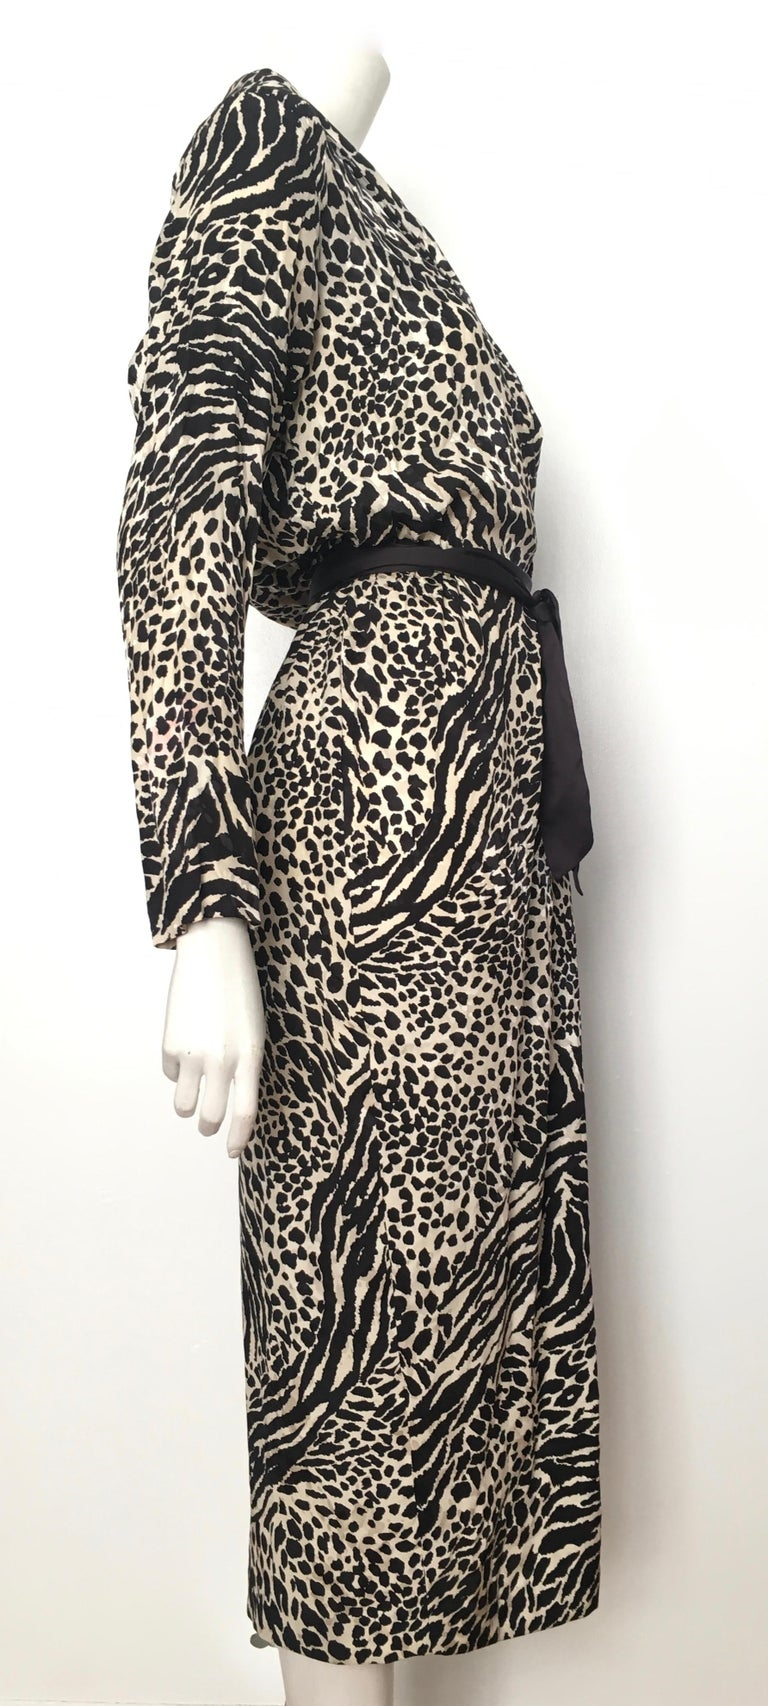 Geoffrey Beene for Lillie Rubin 1980 Animal Print Silk Dress Size 6. For Sale 5